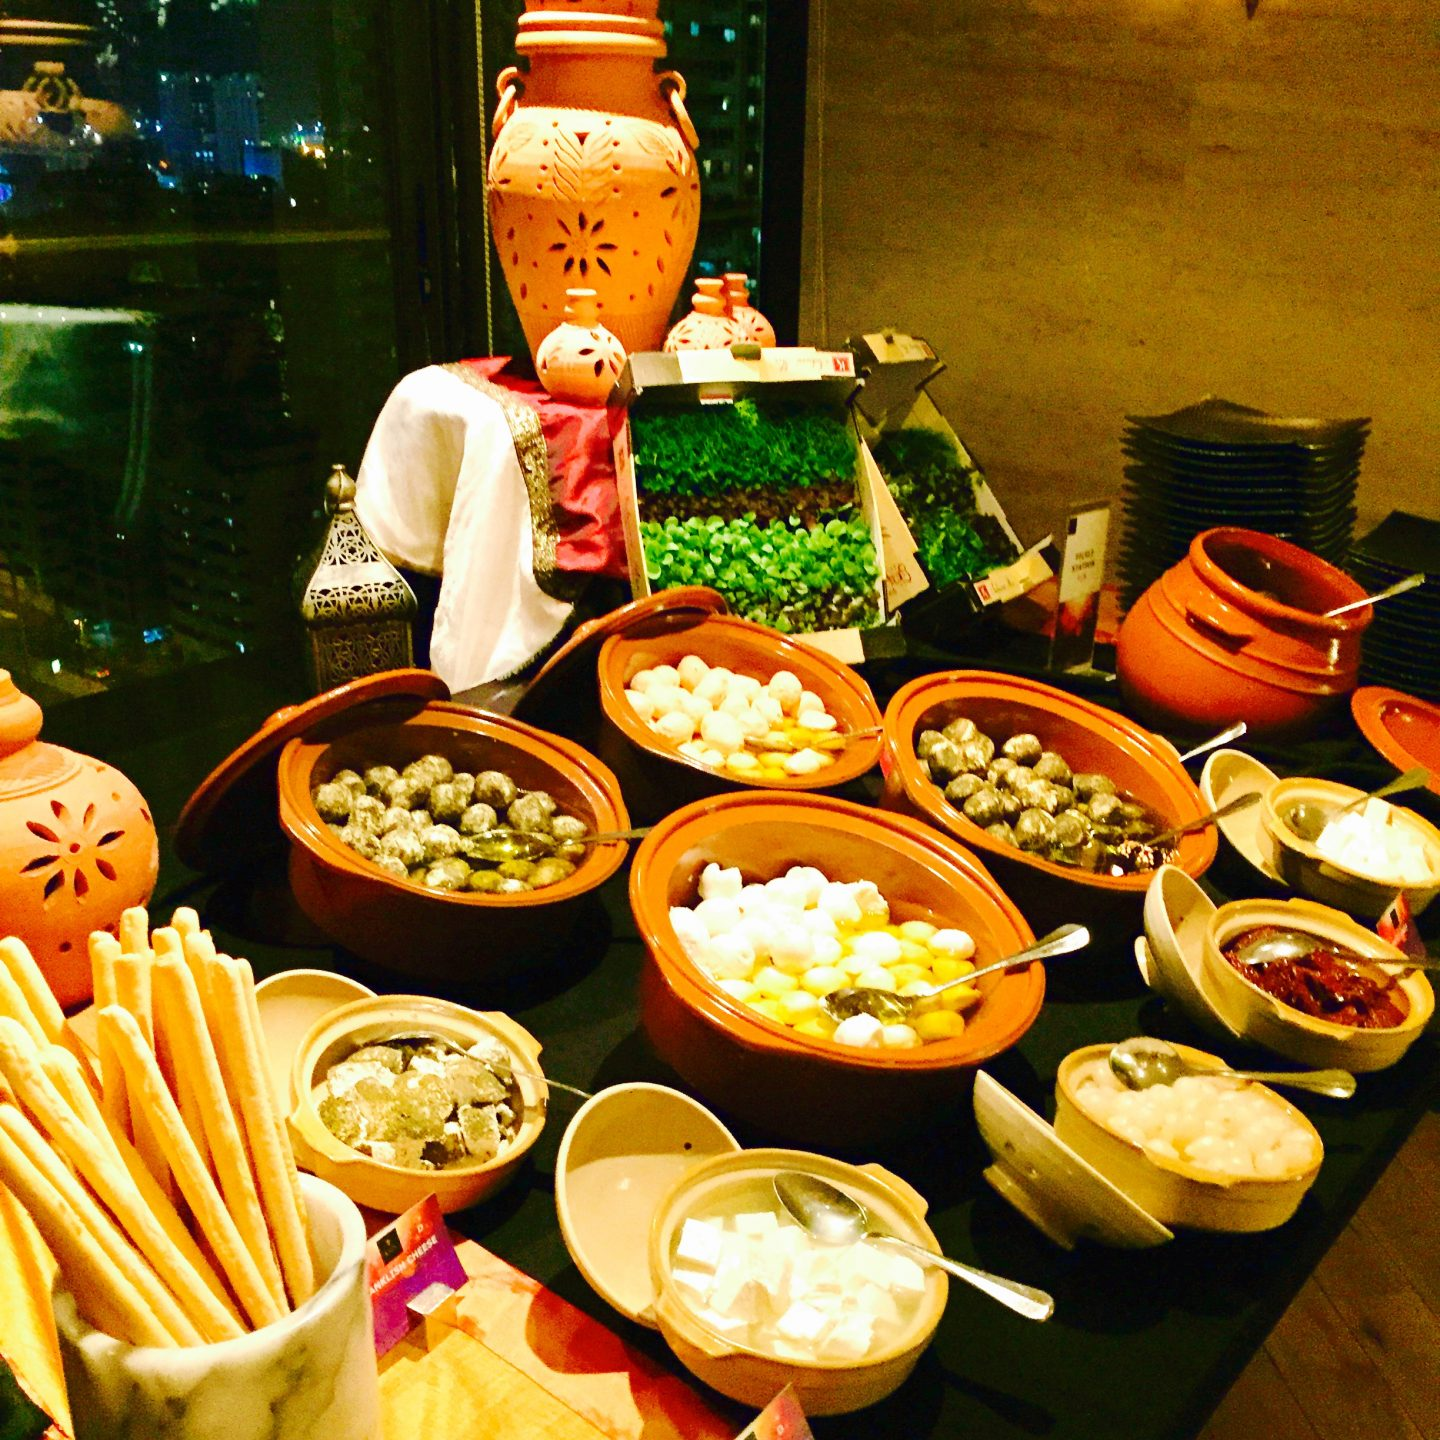 Cheerful Dining Experience – My Iftar at KRIS WITH A VIEW